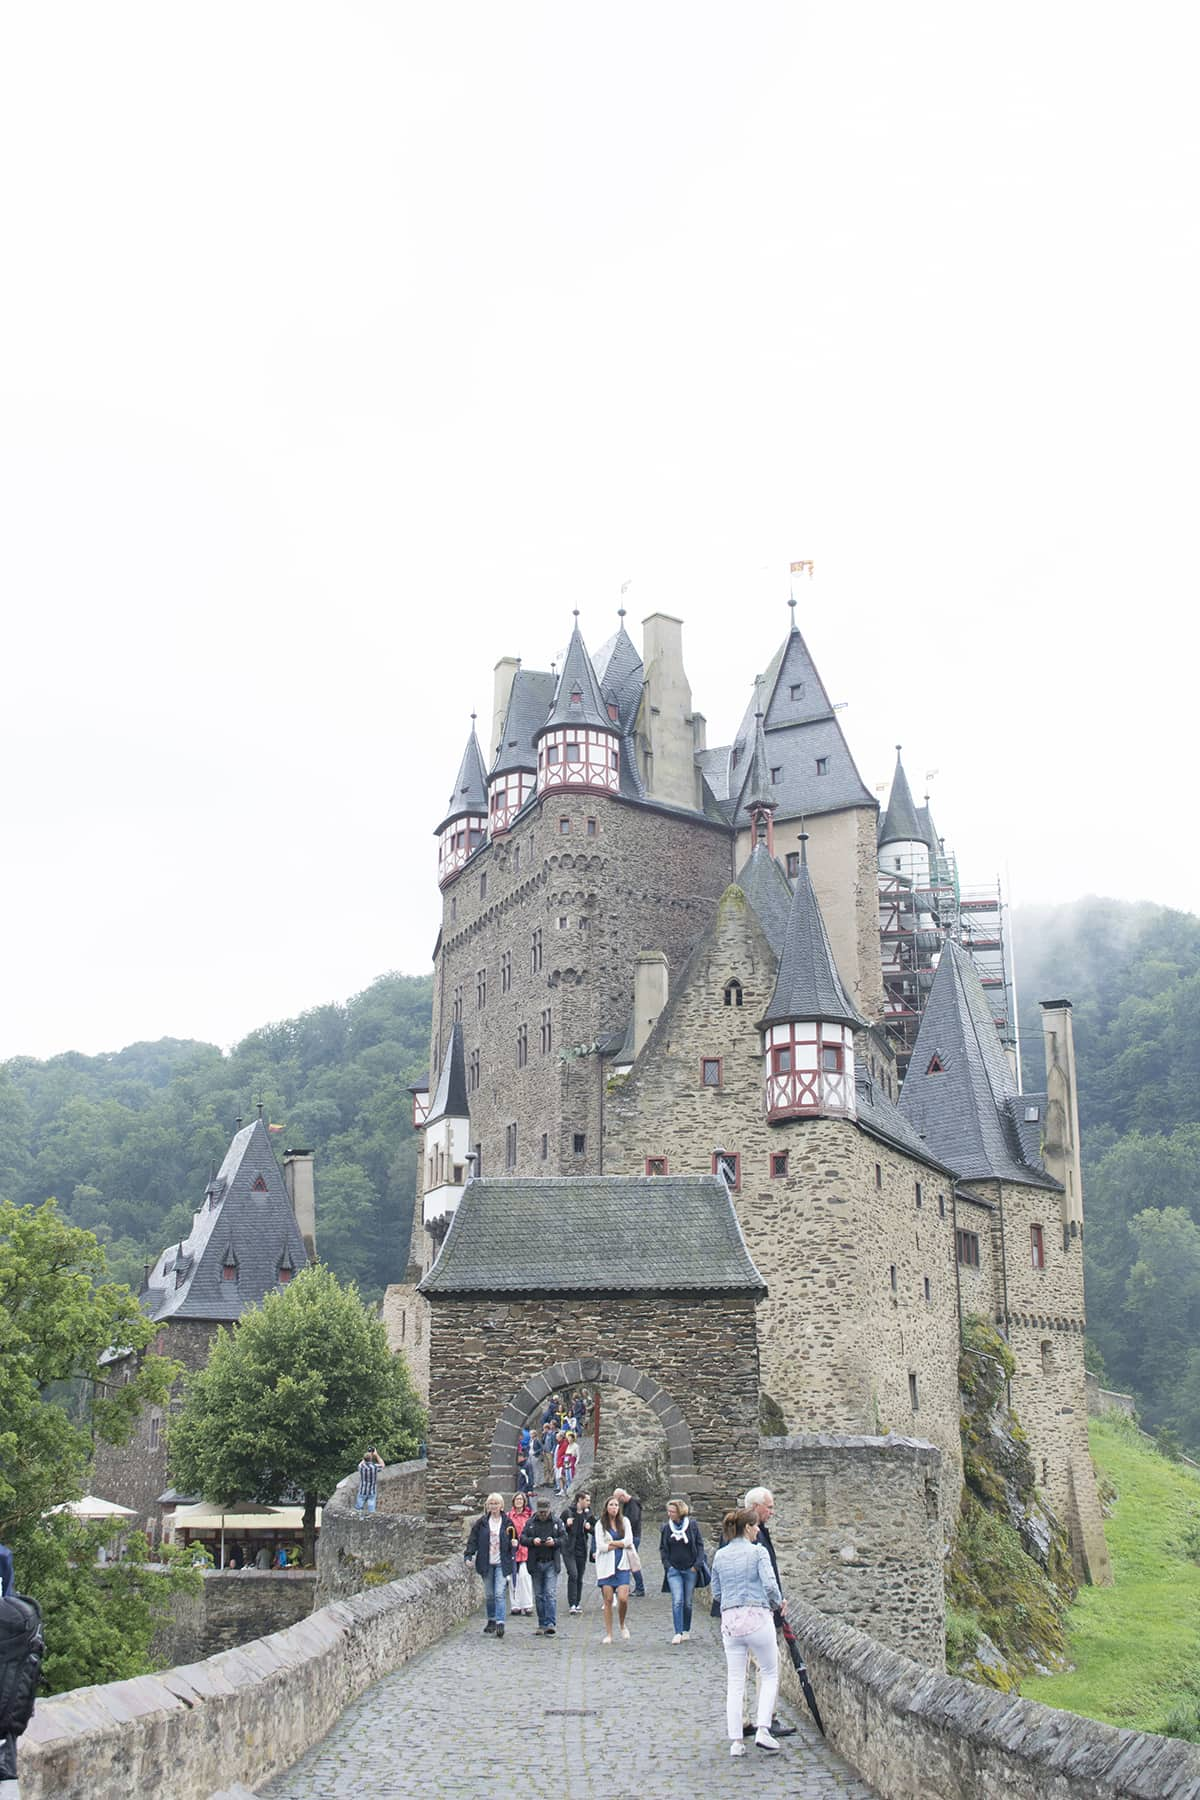 Stunning German castle Burg Eltz or Eltz castle which has been unscathed by wars and is still owned by the same family who started building it 850 years ago.